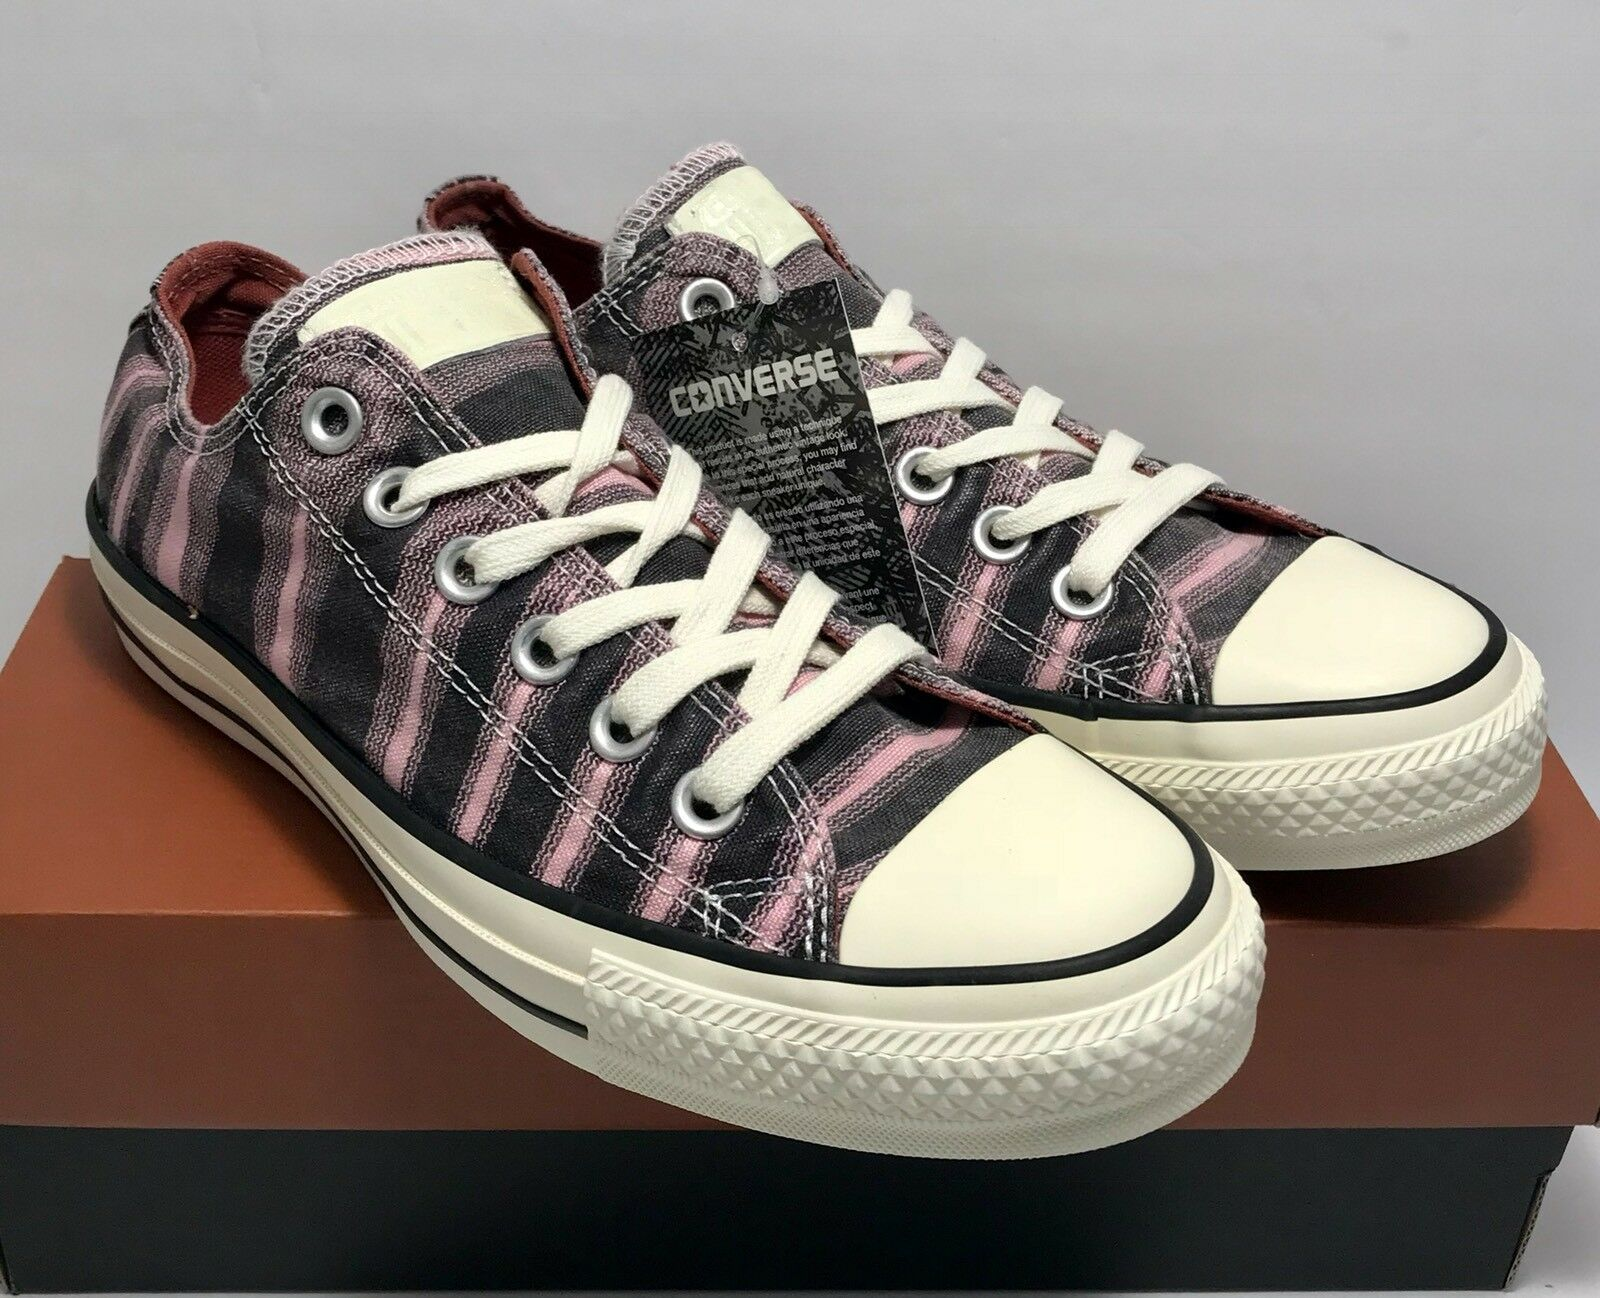 Converse Womens Size 7 Missoni Pink Freeze Chuck Taylor All Star Shoes Sneakers